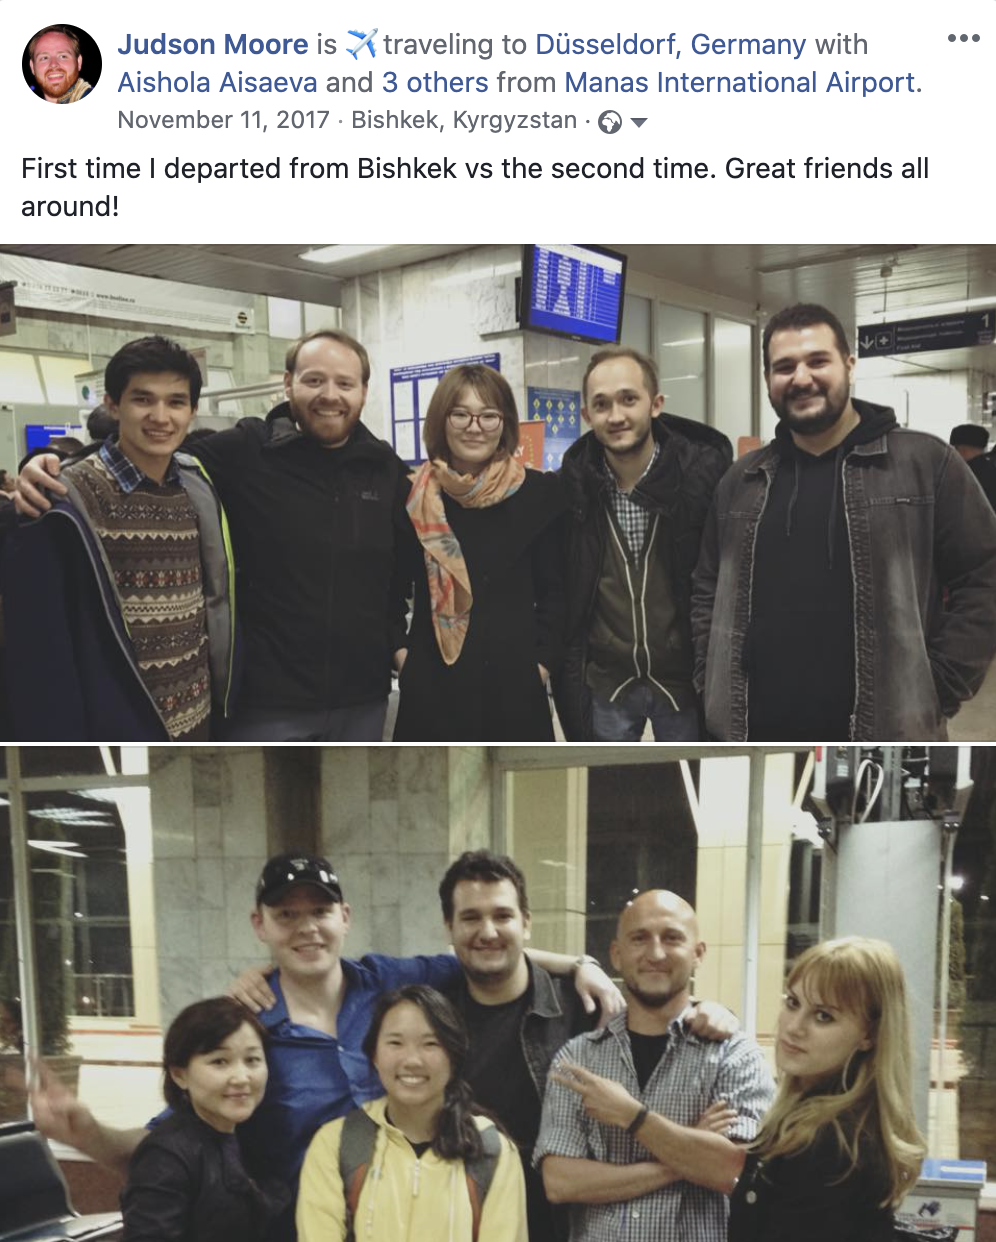 First time I departed from Bishkek vs the second time. Great friends all around!